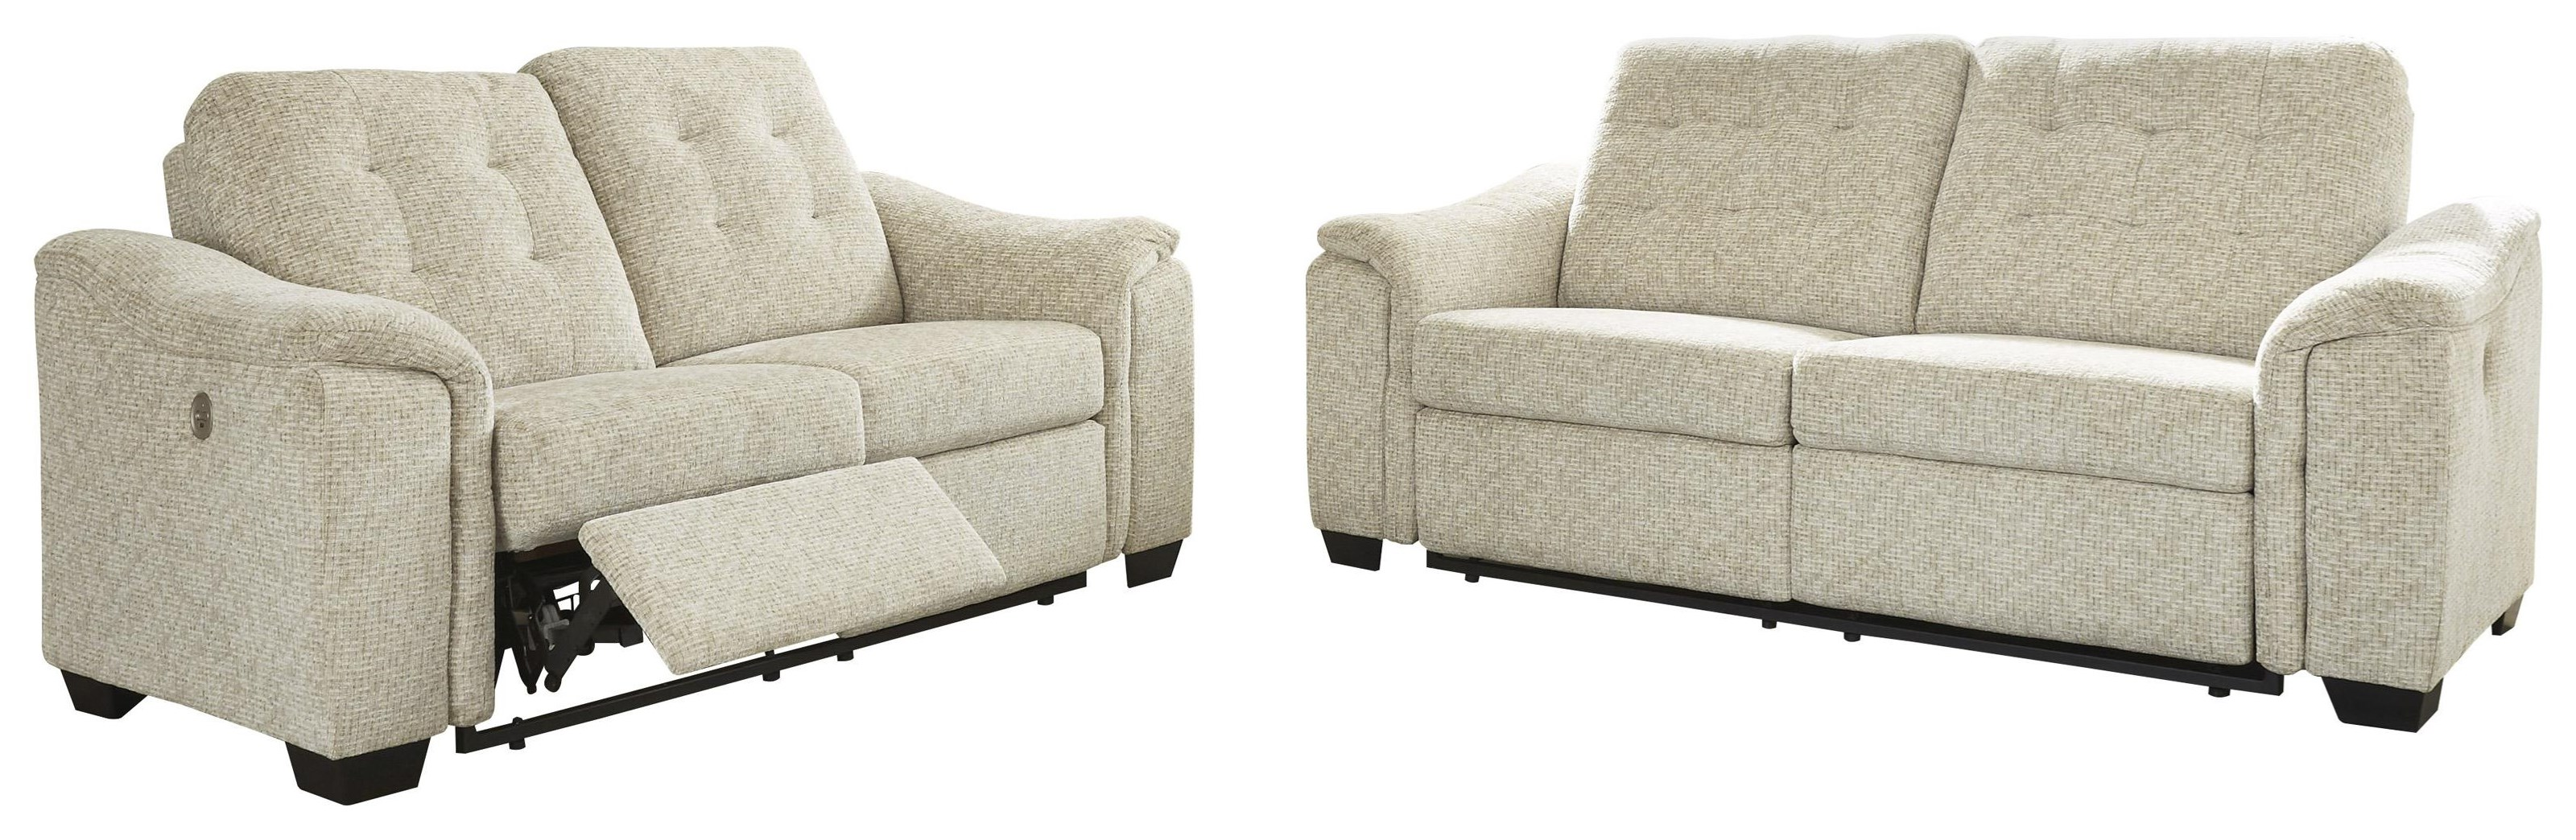 Beaconfield 2 Piece Power Reclining Living Room Set by Ashley Furniture at Sam Levitz Furniture